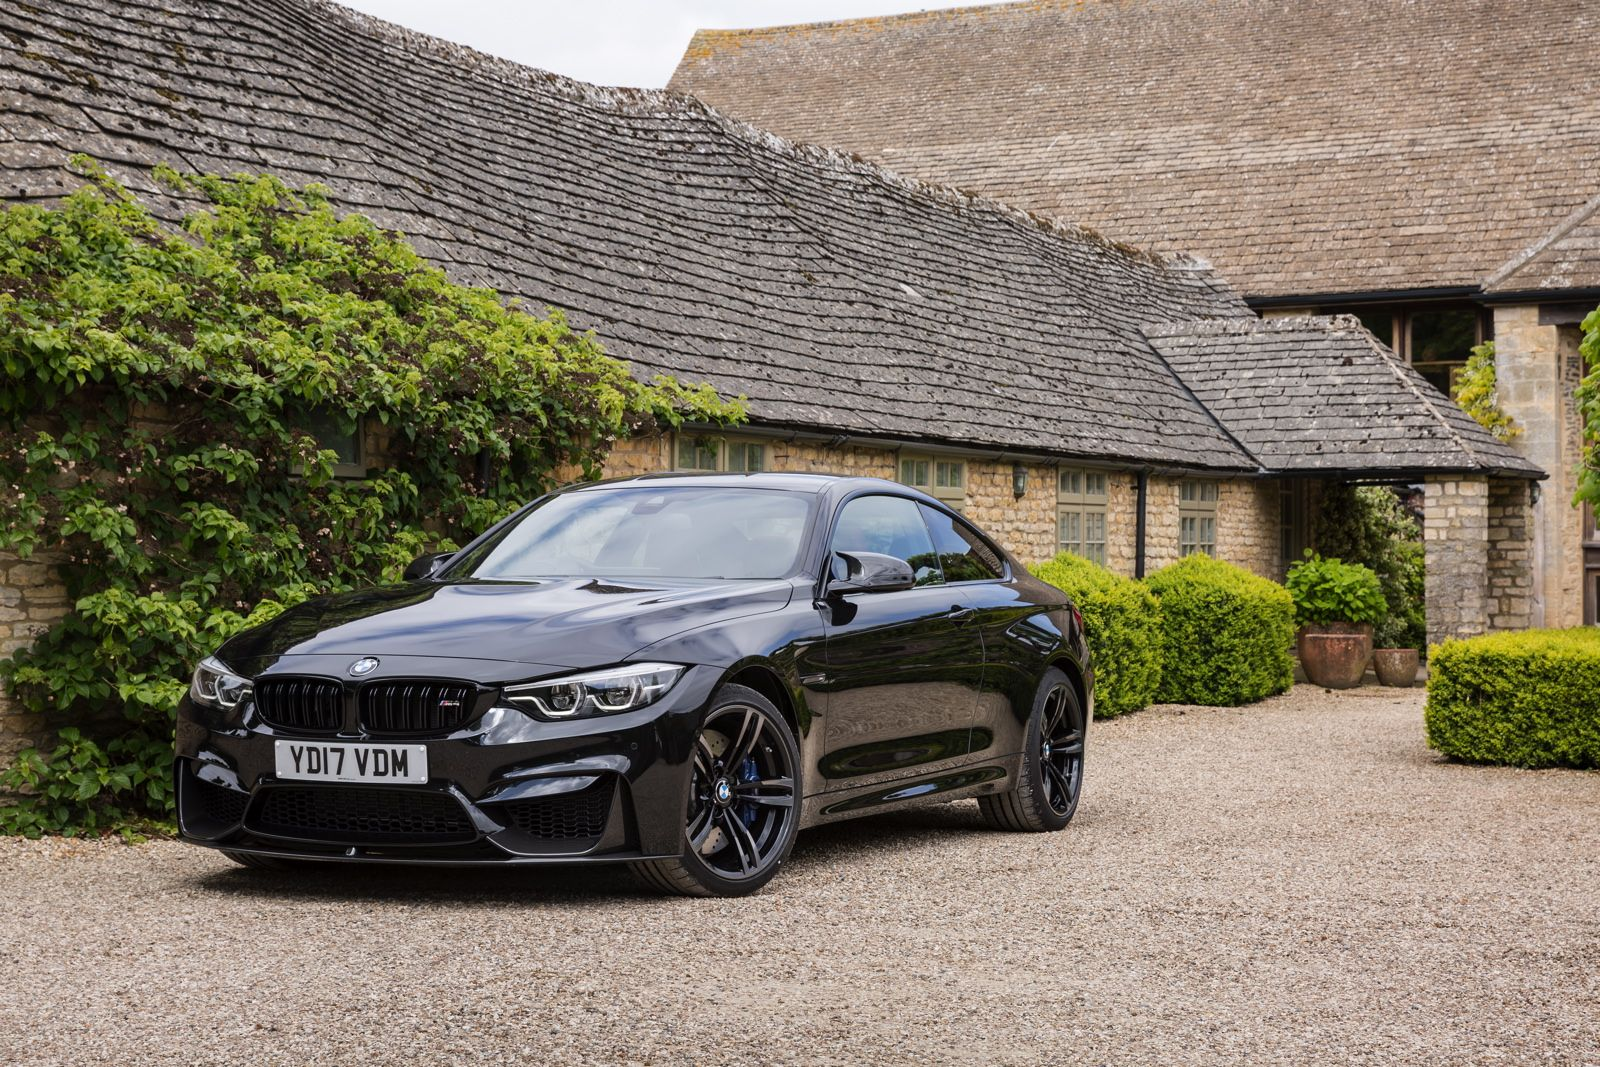 2018 bmw 4 series and m4 models now available in the uk starting at